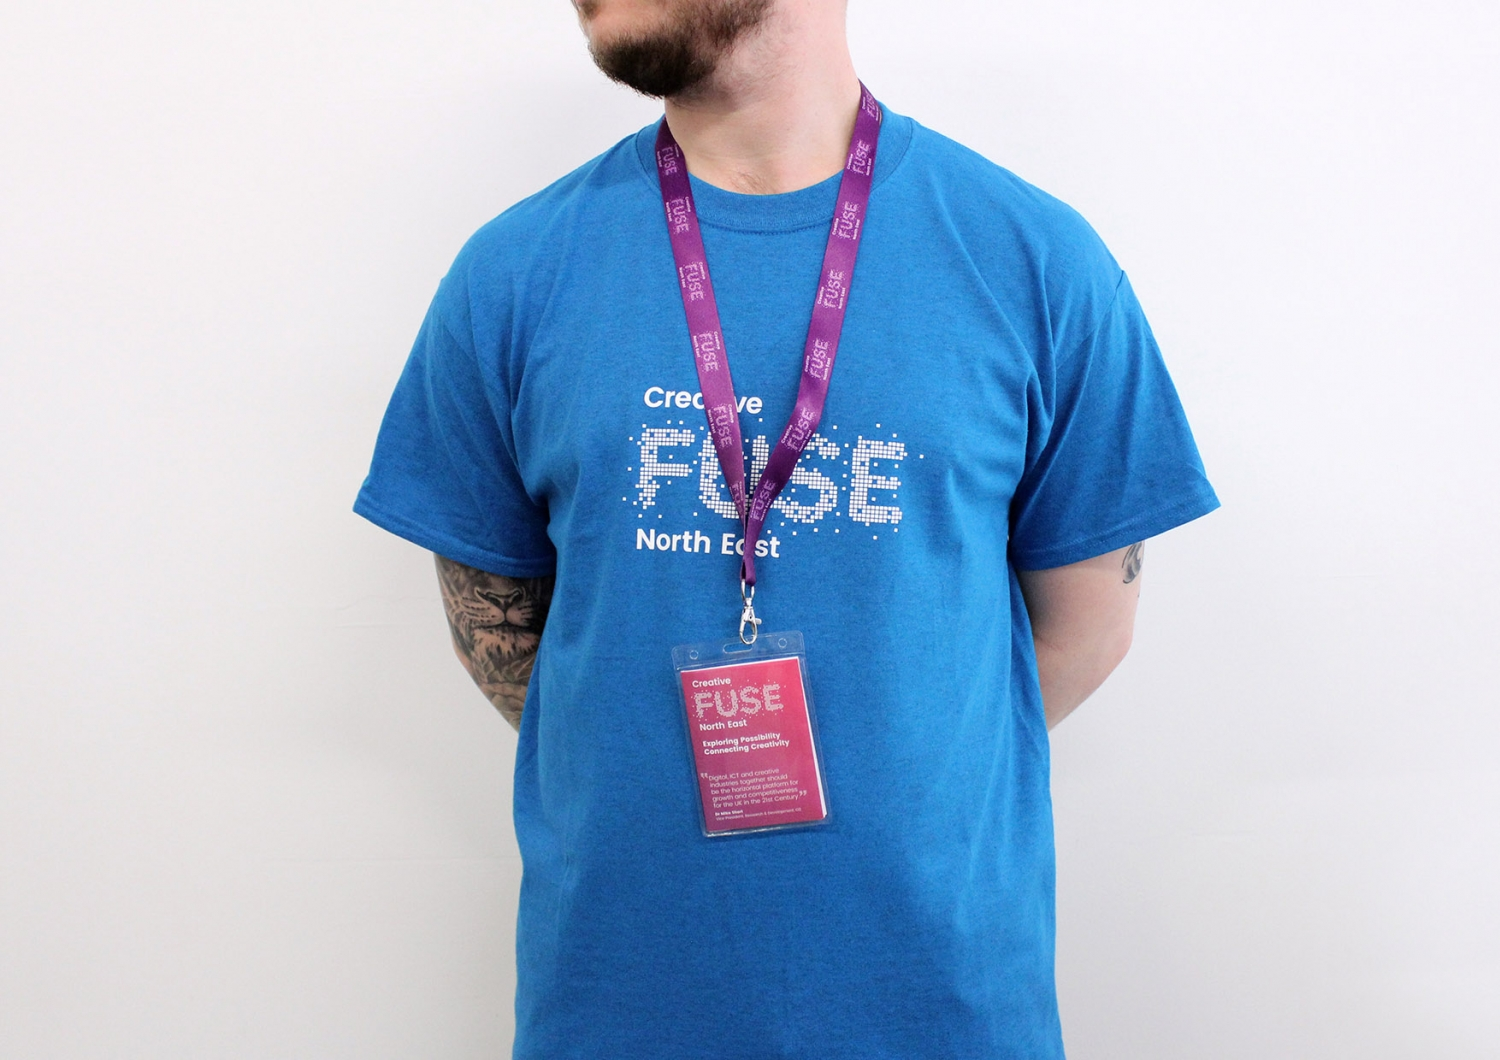 Conference branding and merchandise for Creative Fuse North East by Altogether creative.